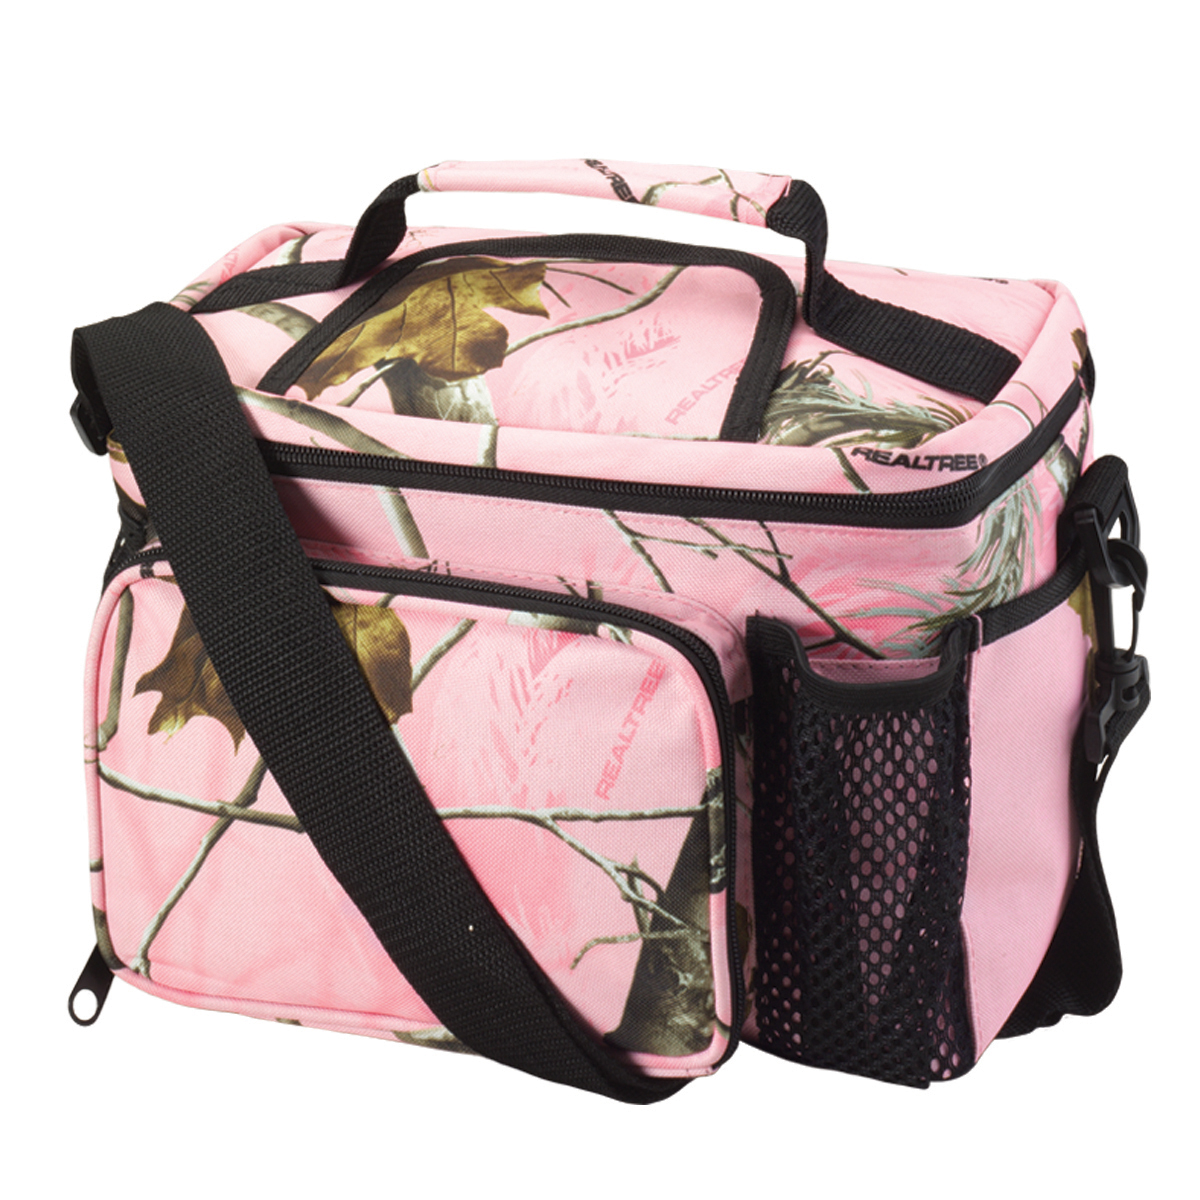 Realtree Apc Pink Camo Cooler Lunch Box Bag